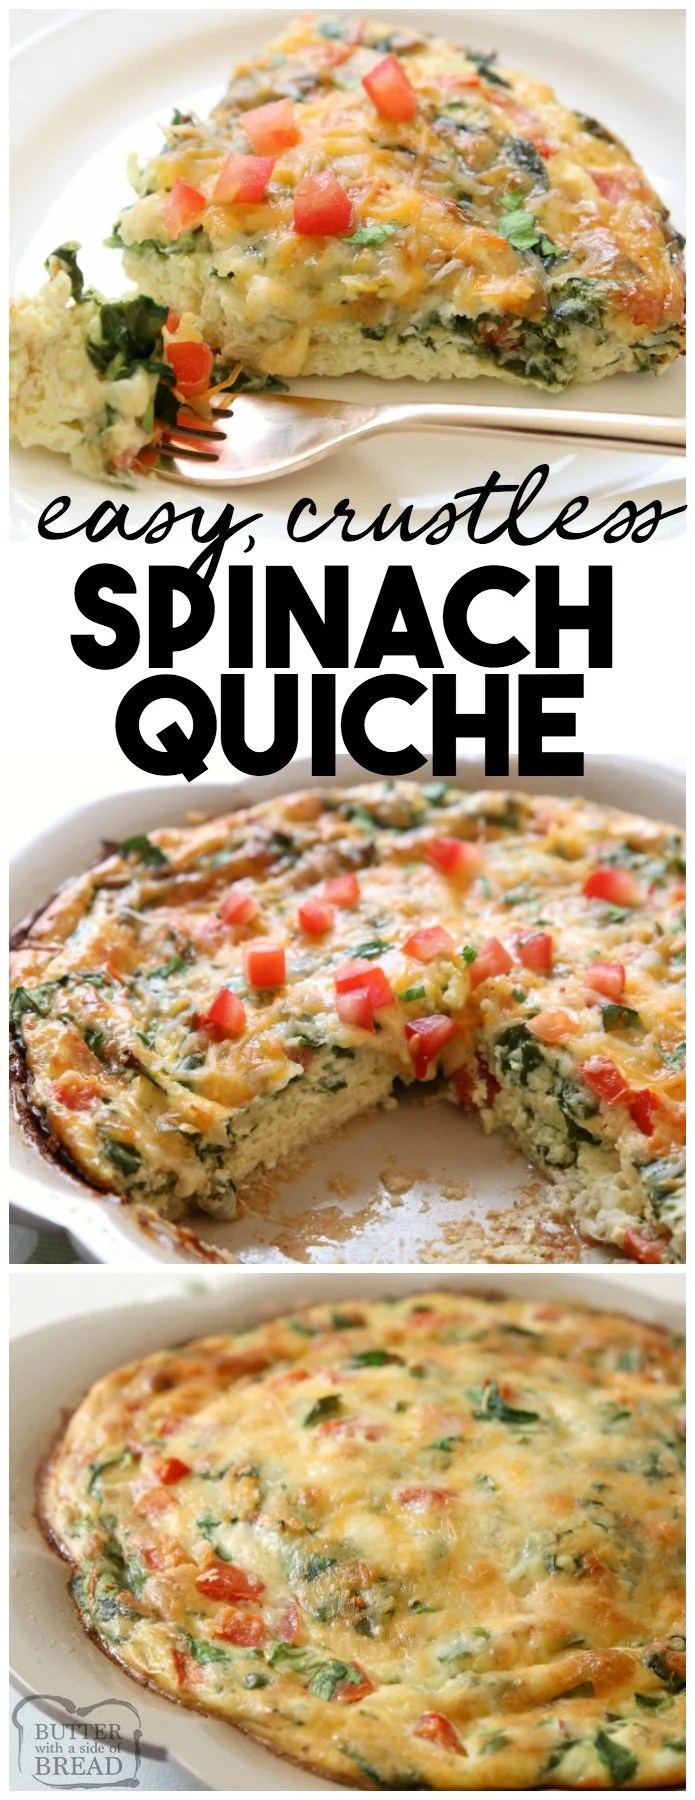 Crustless Spinach Quiche recipe that's quick & easy and tastes absolutely delicious! Packed with protein from milk, cheese and eggs, this easy quiche recipe also has spinach and fresh tomatoes. Serving crustless quiche makes prep so much easier, plus the quiche is healthier for you. Easy #spinach #quiche #recipe from Butter With A Side of Bread #crustless #food #breakfast #brunch #protein #meatless